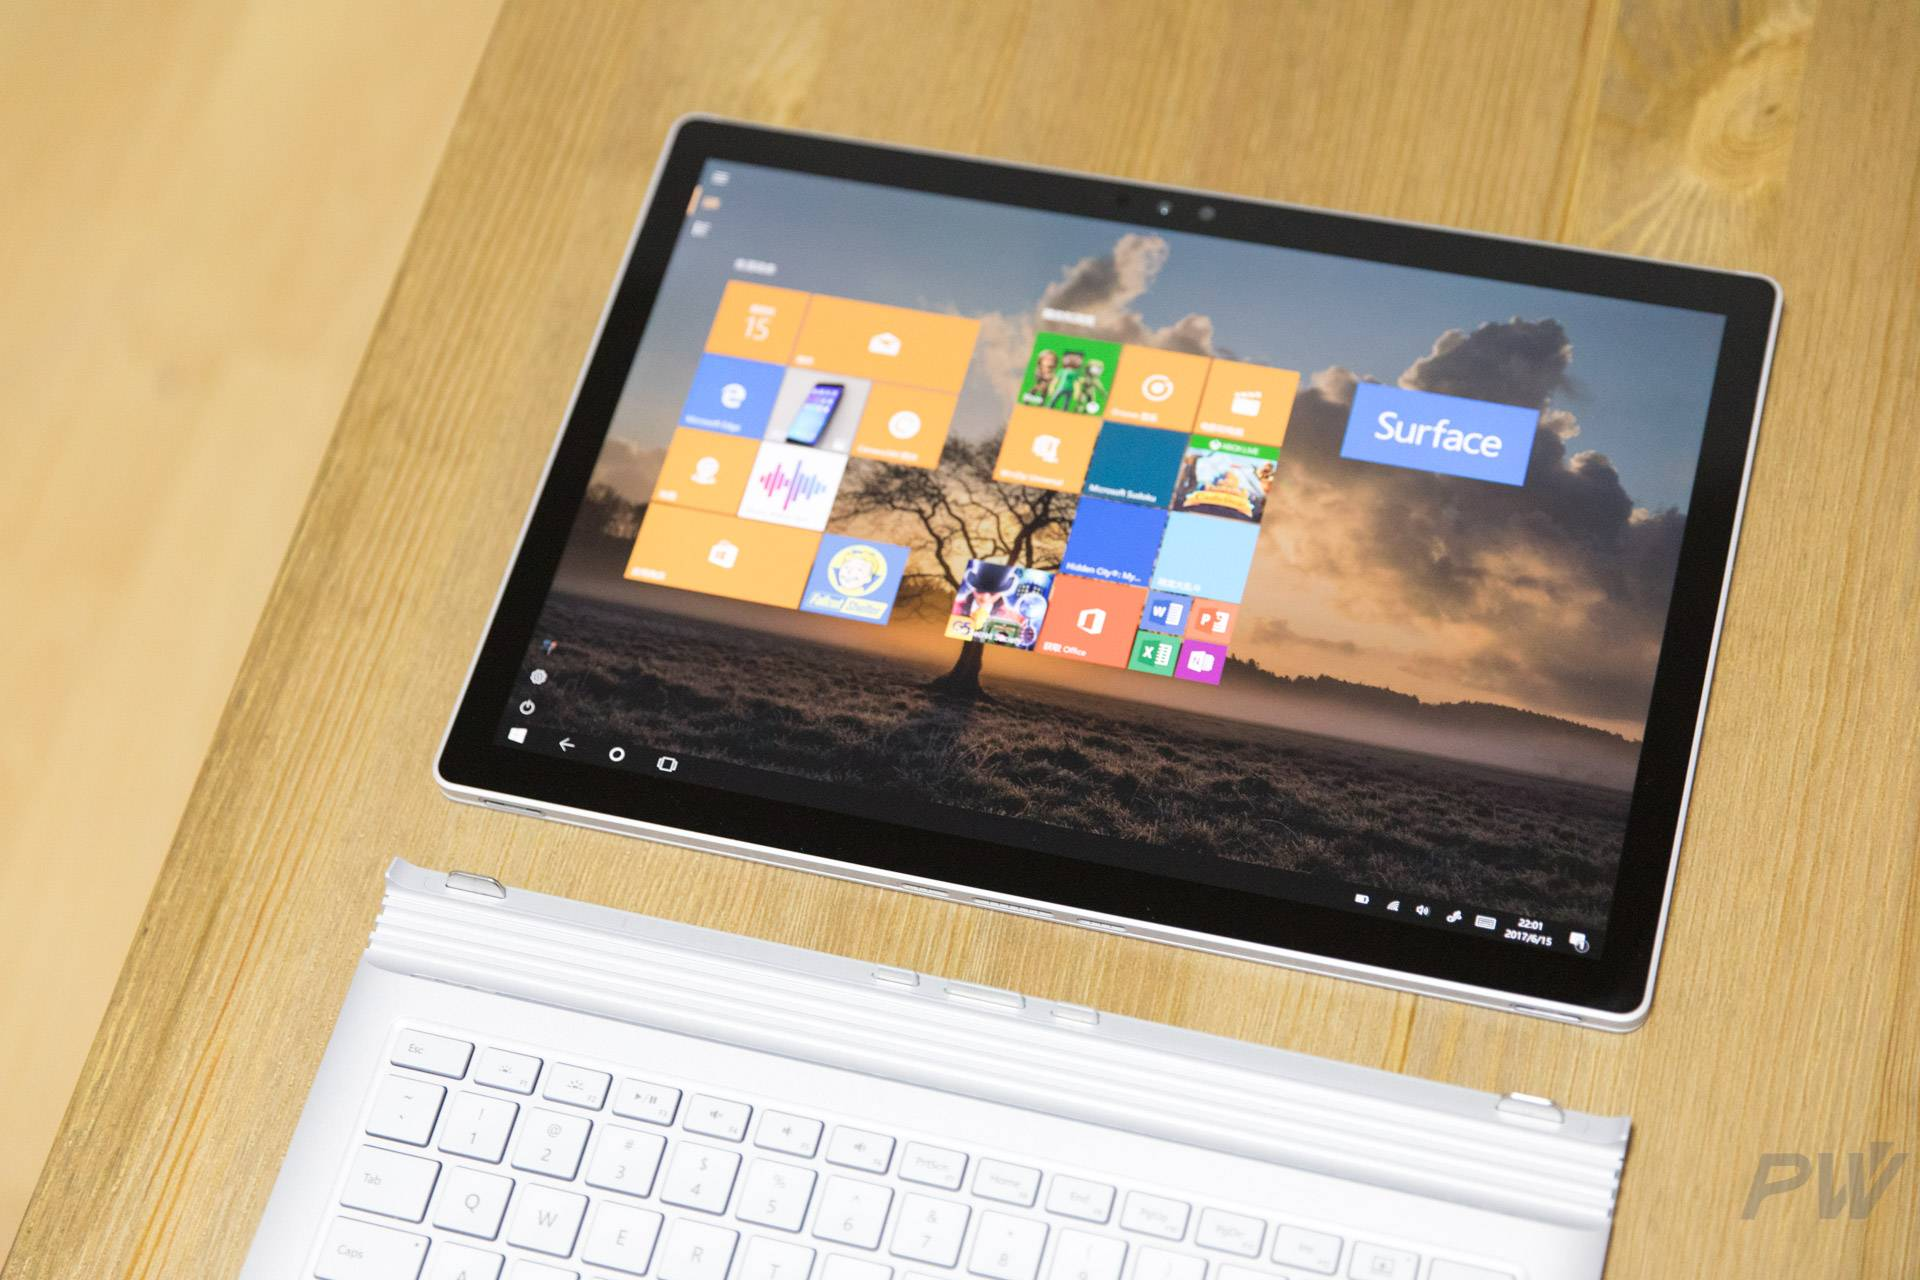 Microsoft Surface Book 2017 Photo by Hao Ying-23